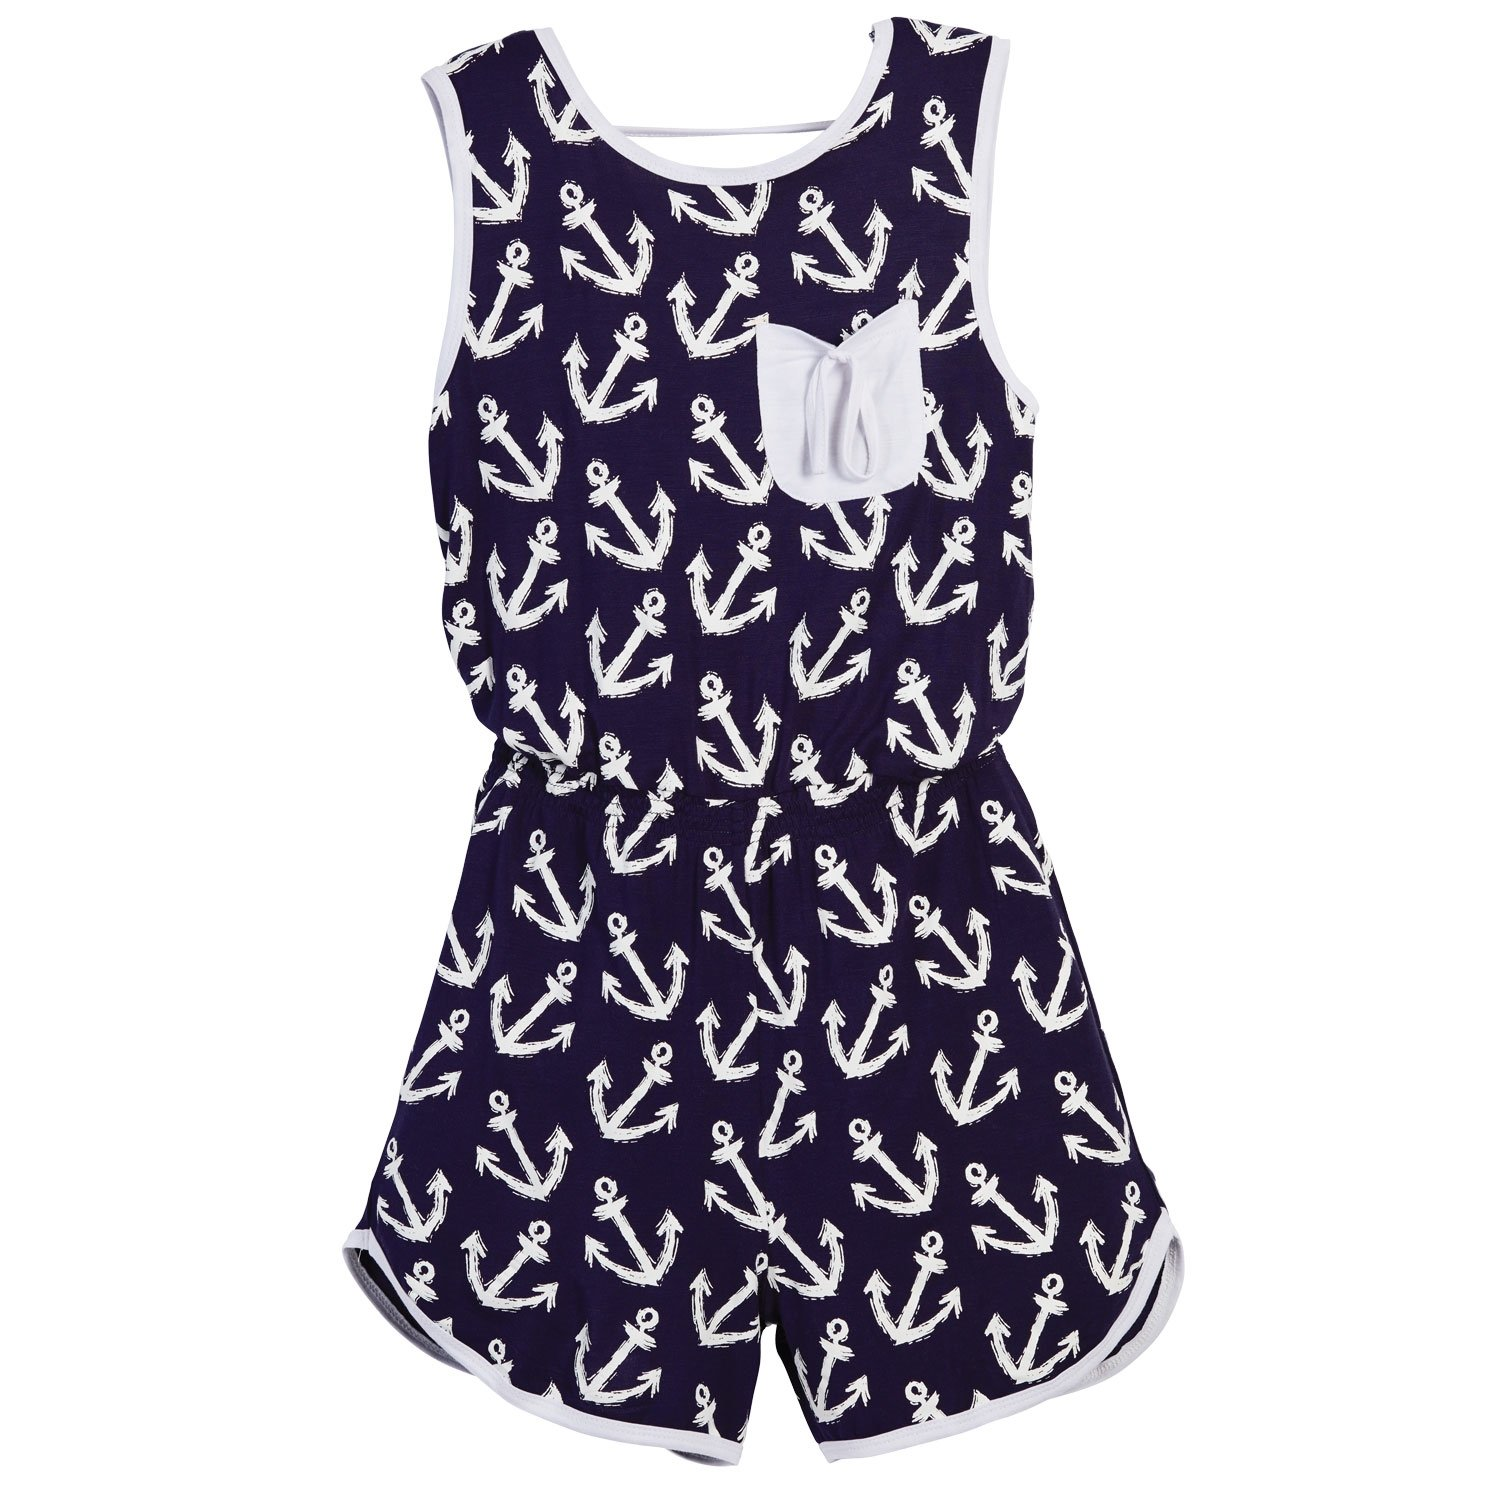 Beachcombers Girl's Tops Rayon/Spandex Anchor Romper Navy/White Large